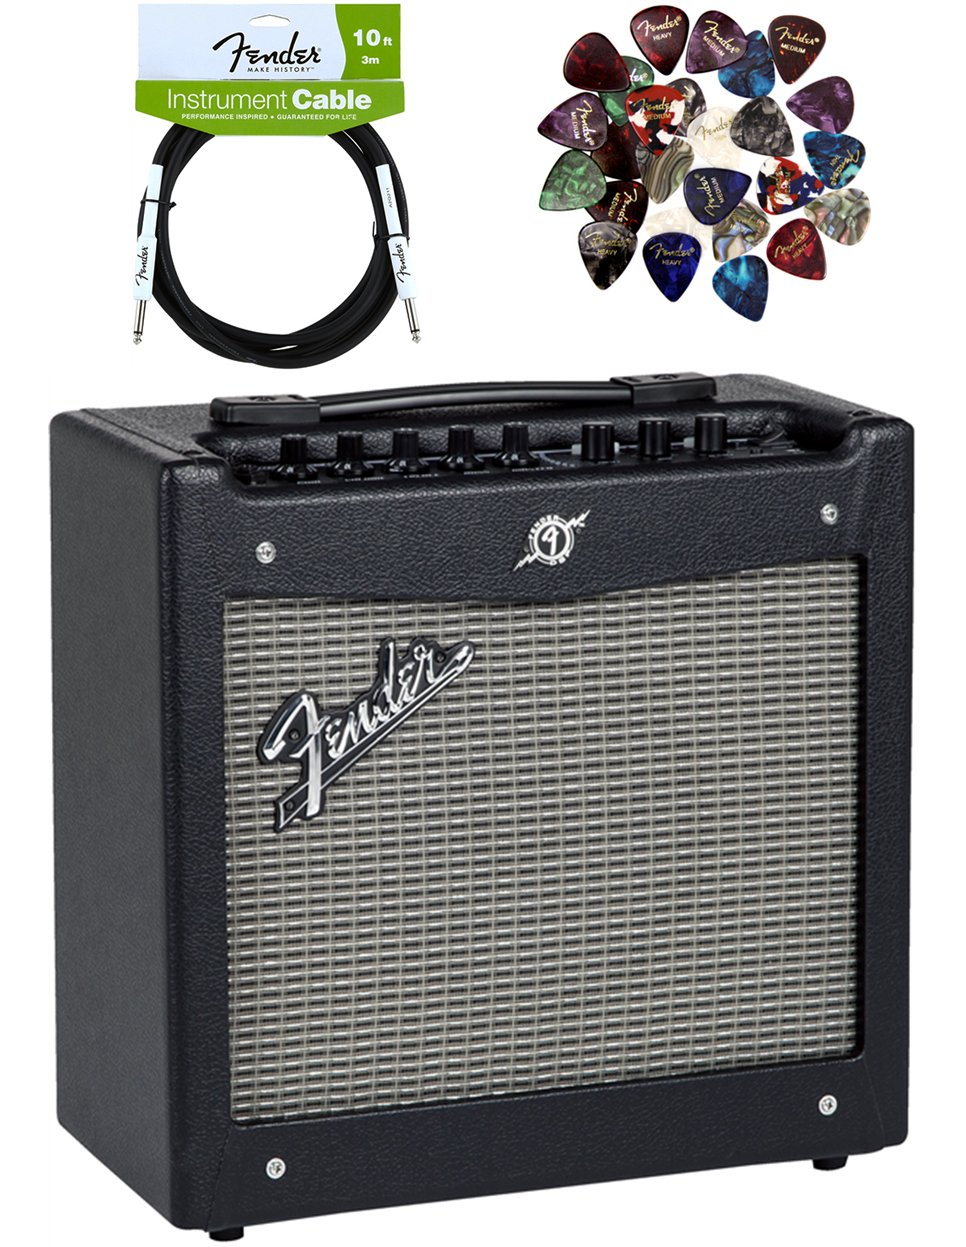 Fender Mustang I Guitar Amplifier Bundle with Instrument Cable, Pick Sampler, and Austin Bazaar Polishing Cloth